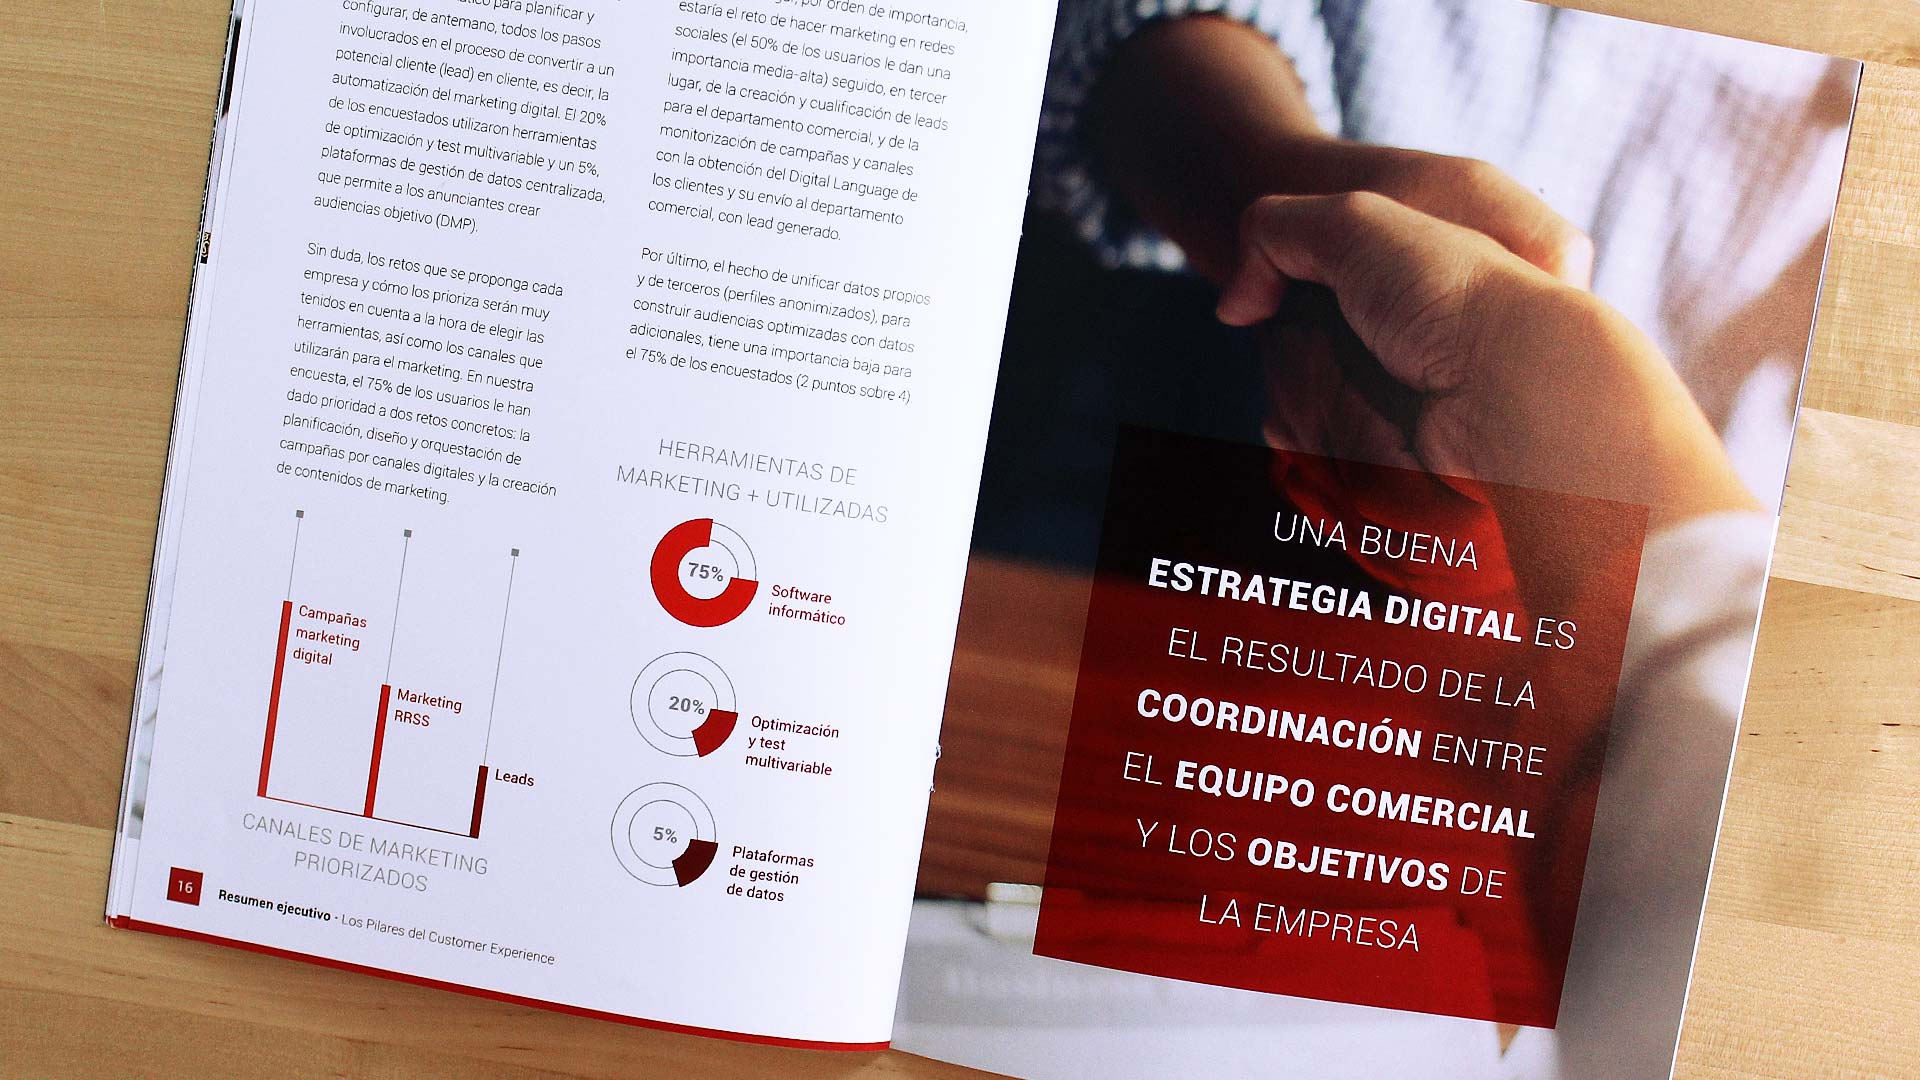 oracle-content-marketing-pilares-customer-experience-2017-09